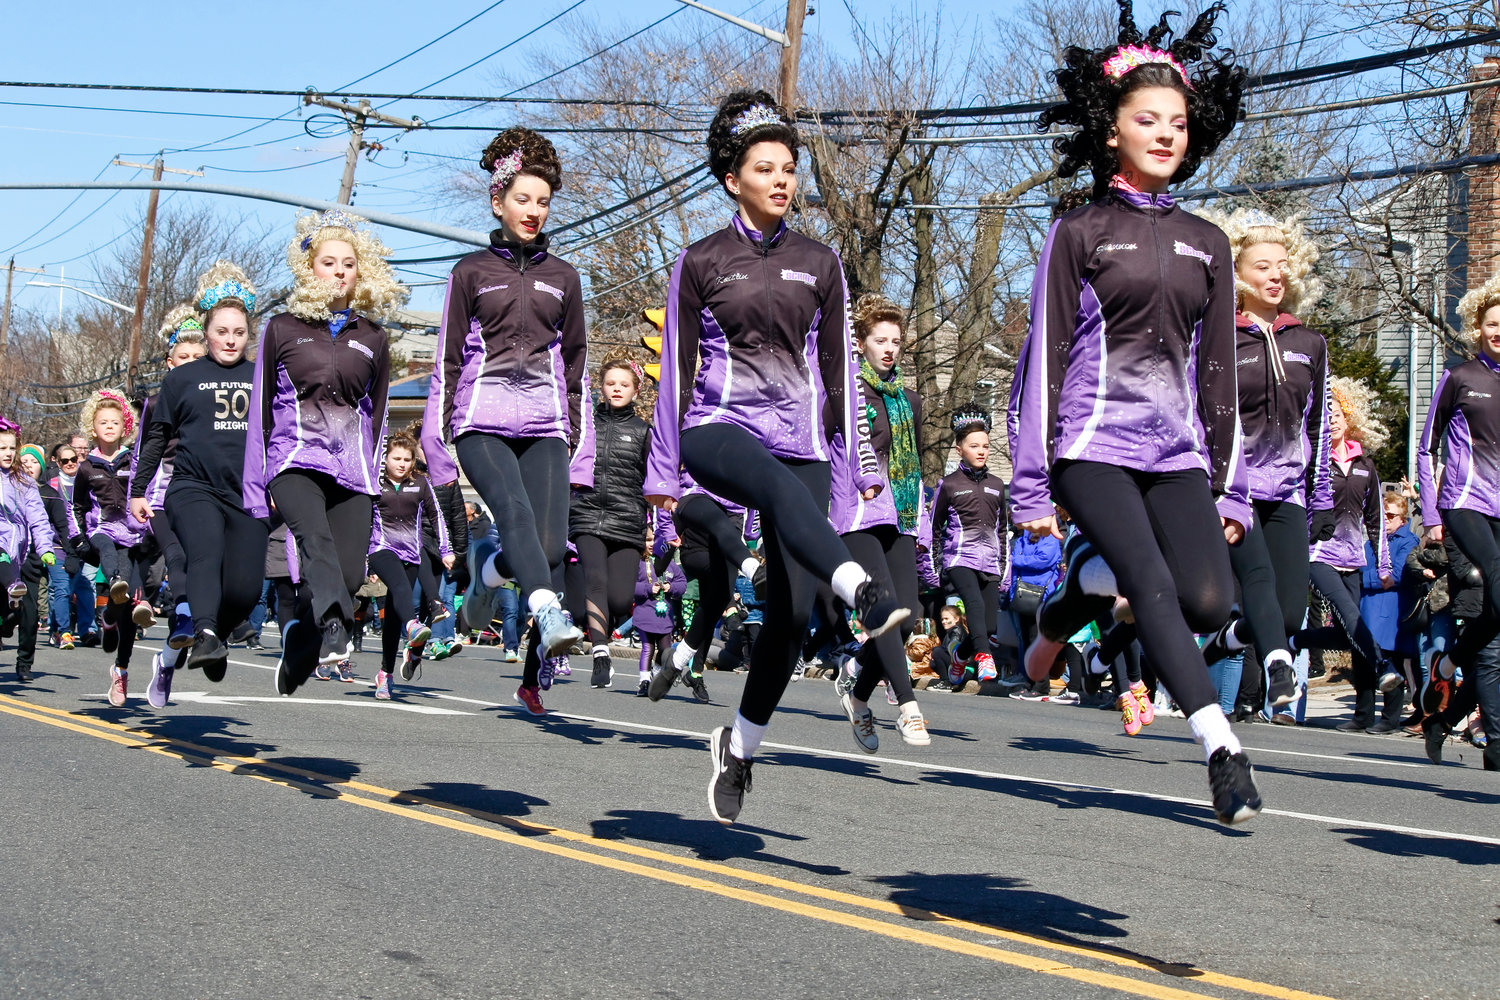 Irish Dancers from the Schade Academy performed for spectators as they marched in last year's parade.